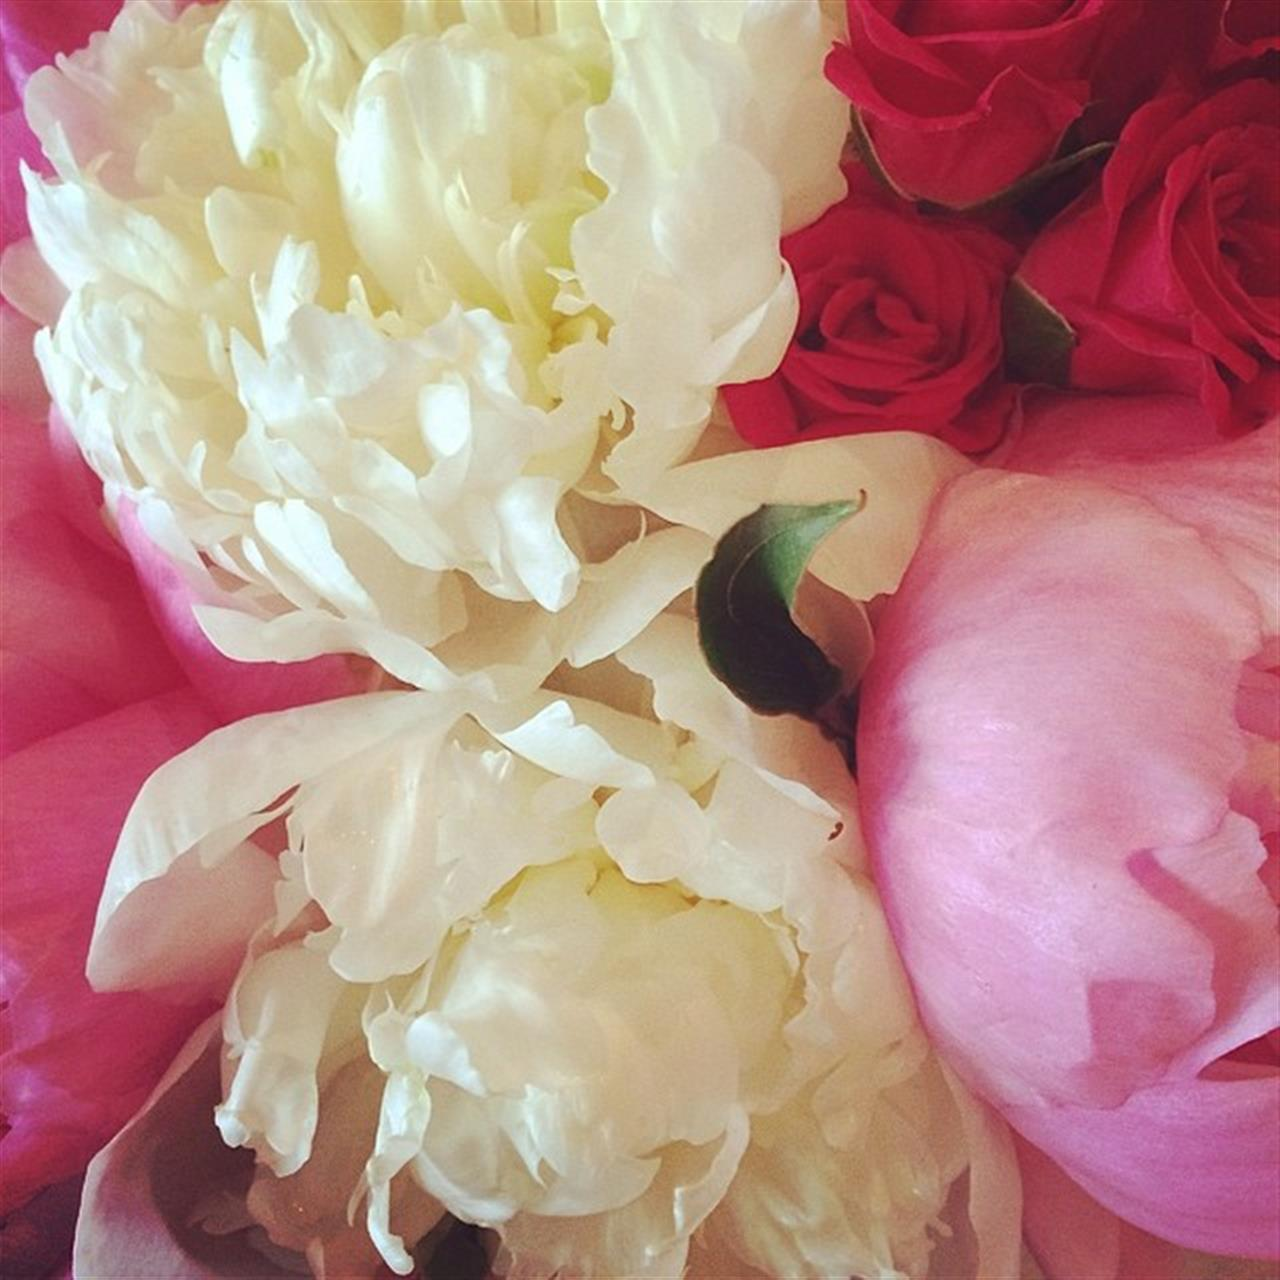 Roses & perfect pink ponies ? #bouquet #bridesmaid #hunniwedding #LeadingRELocal #VeroBeach